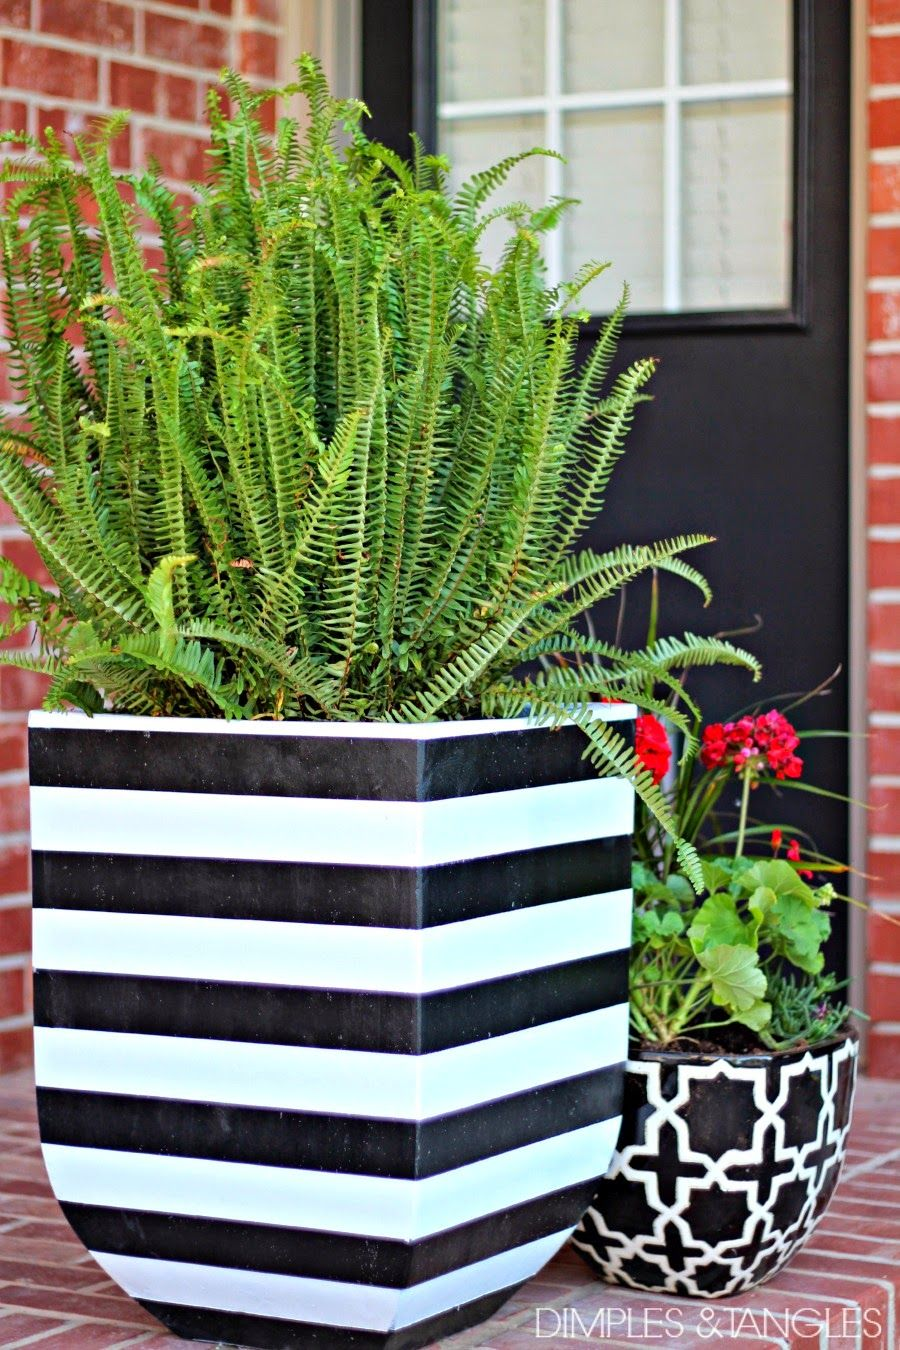 Diy Black And White Striped Pots Varandas Decoradas Jardim Da